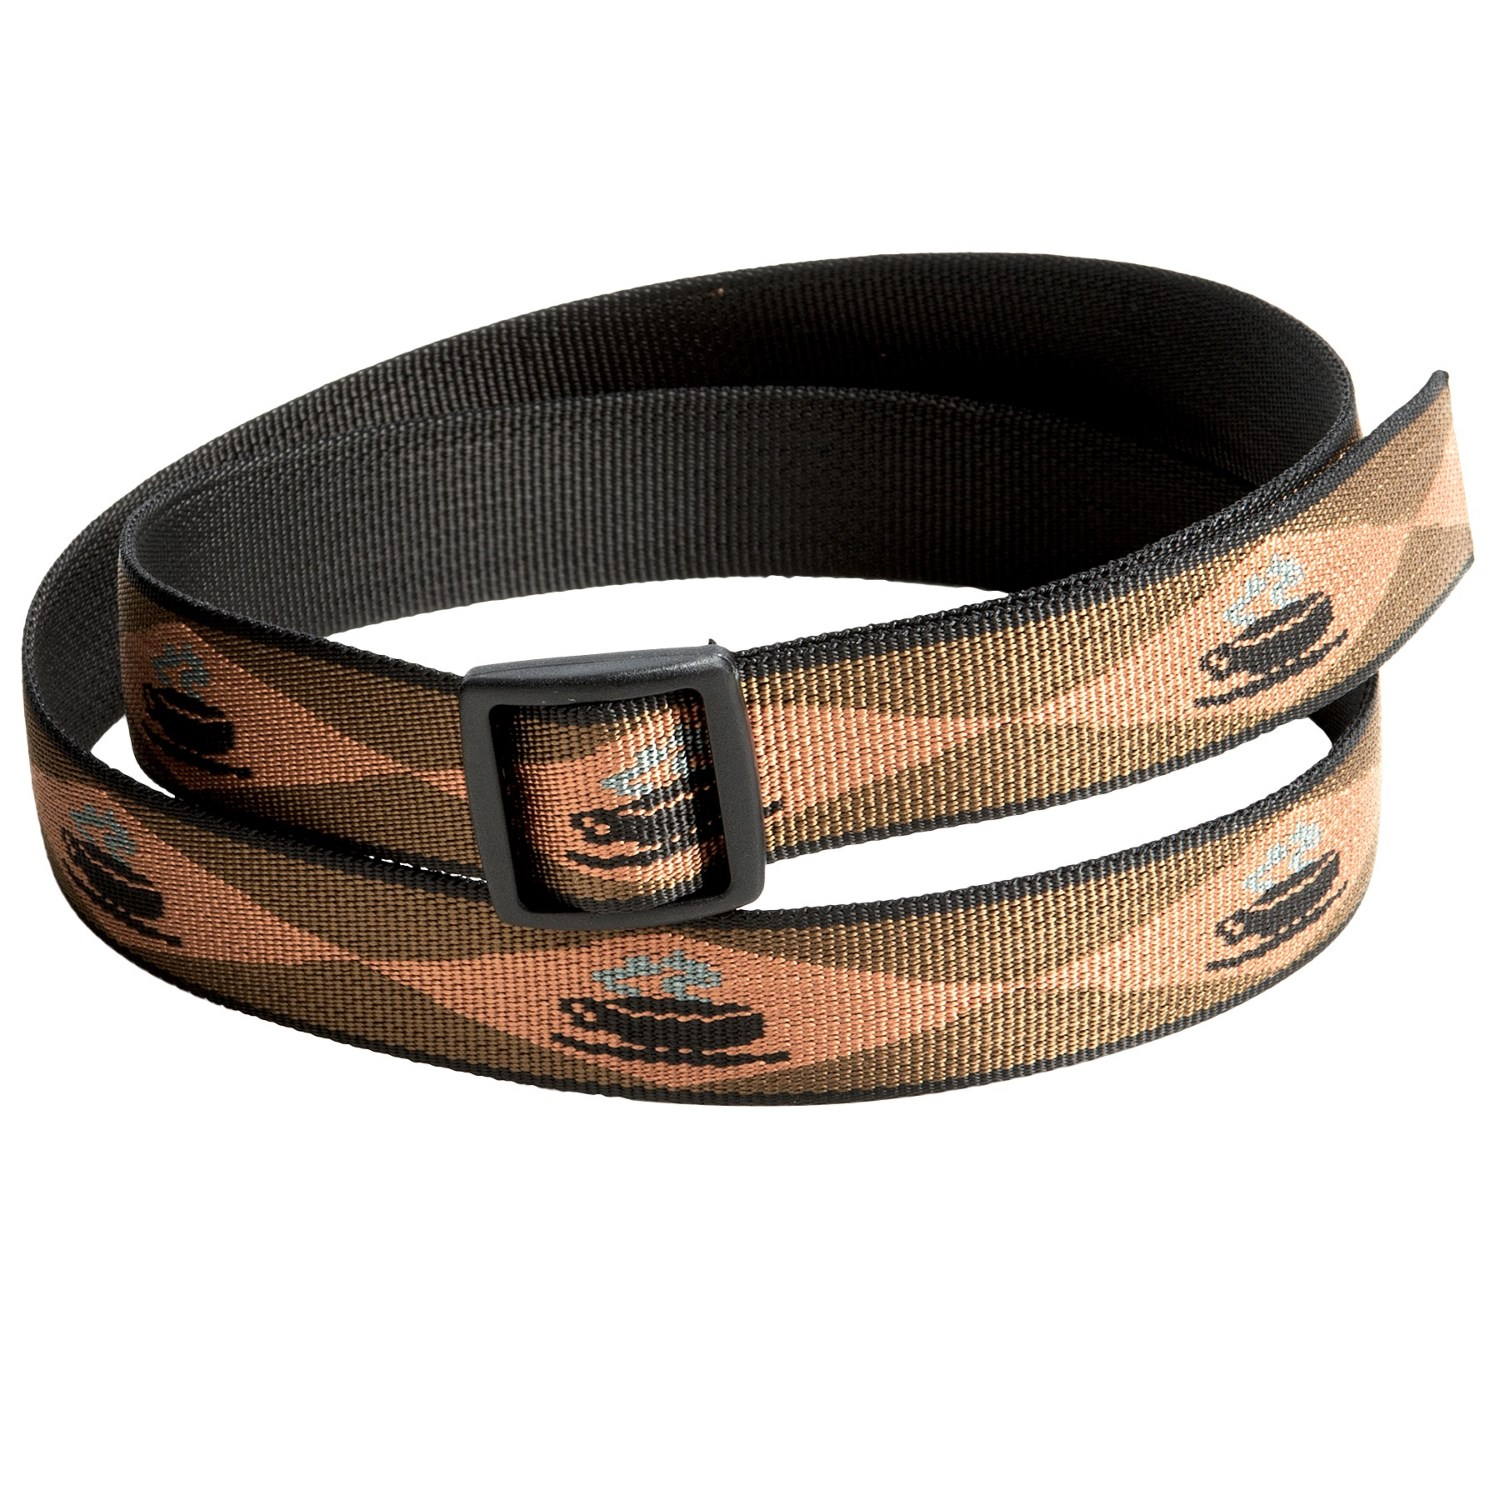 Men's Belts. Buckle's collection of belts for men are a great addition to any look. Brands like Hurley, Fox, BKE, Billabong, Fossil, and more help Buckle bring you men's belts in all colors, styles and materials - including brown and black leather gtacashbank.ga belts are both practical and fashionable.